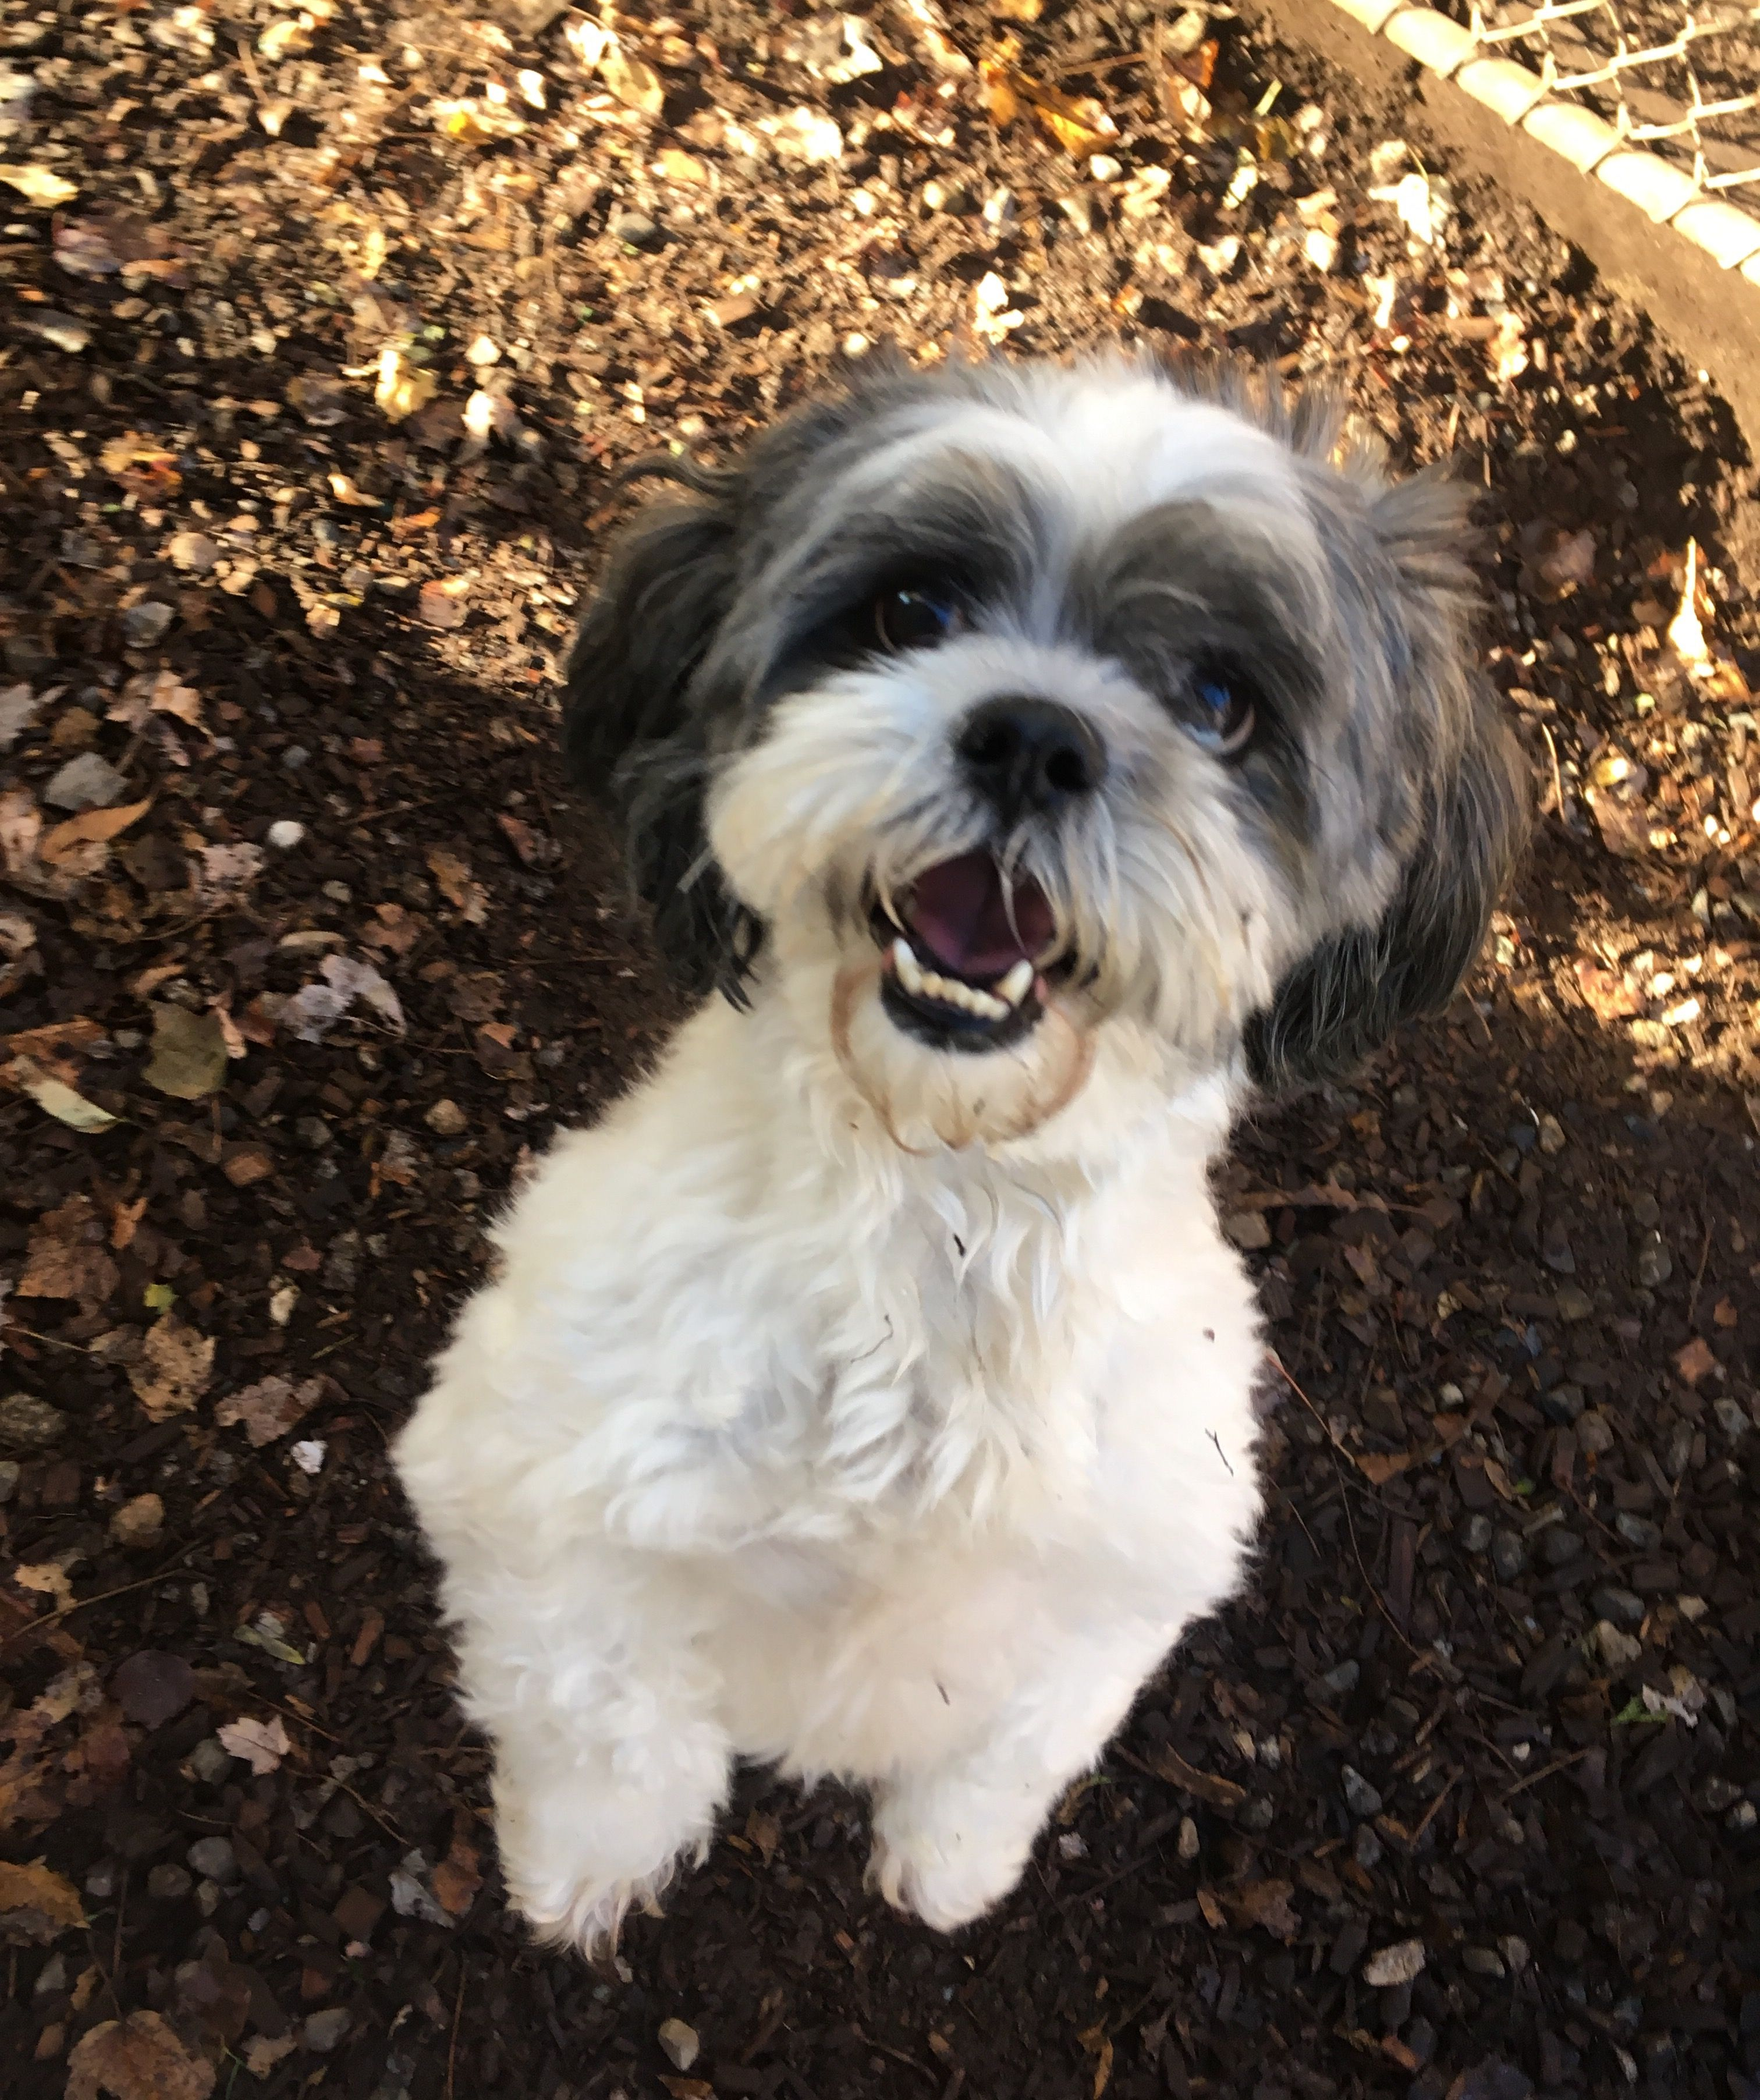 Bandit is ready for a treat! Really! #DogAntics #DogBoarding #Terrier #CookieTime